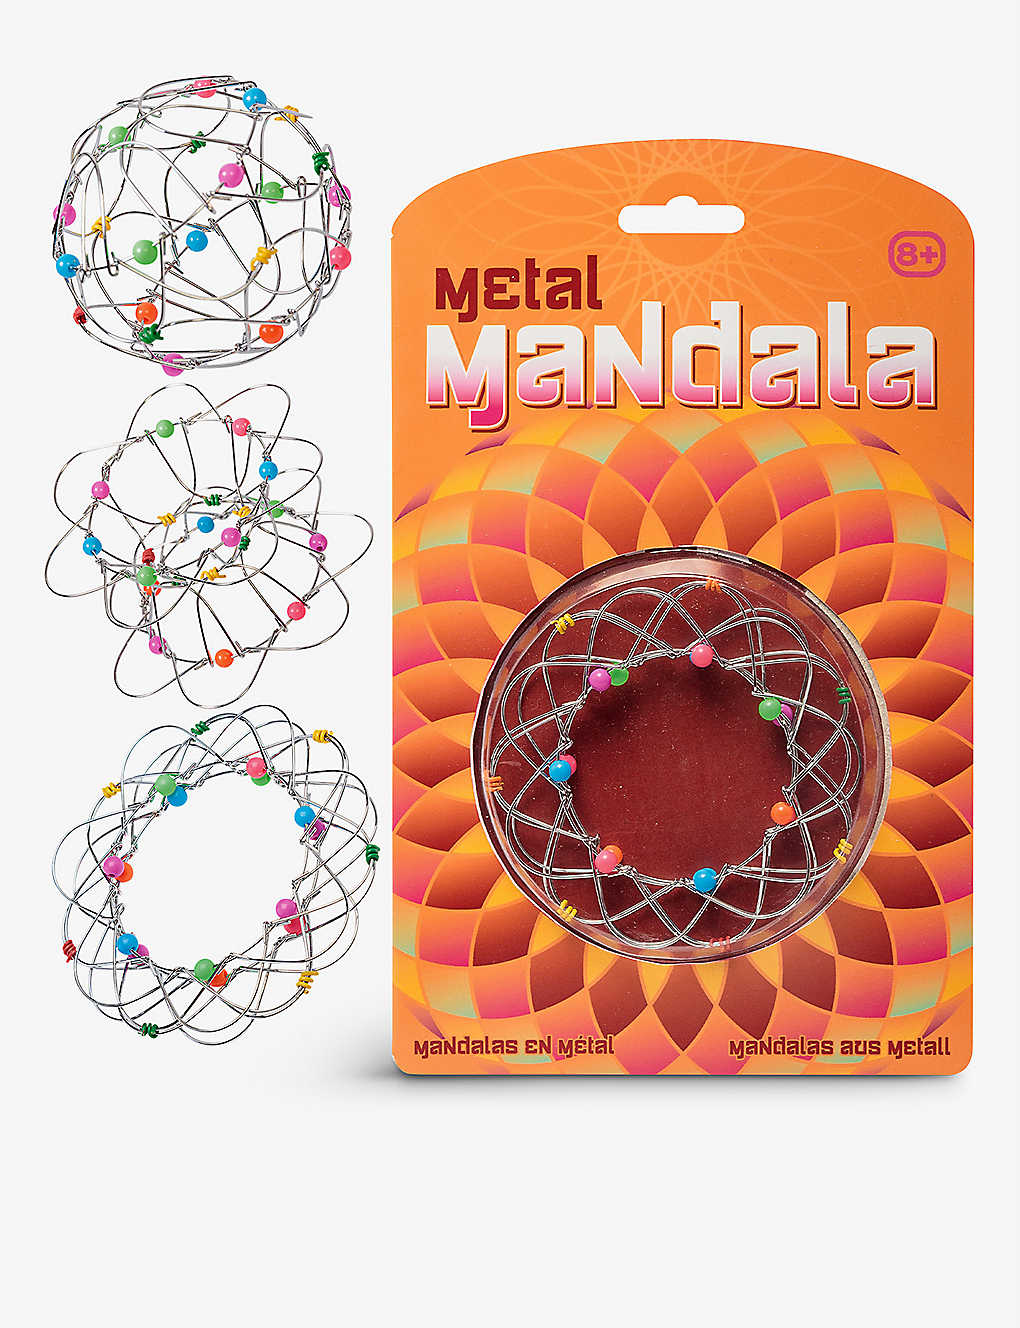 TOBAR: Metal mandala toy